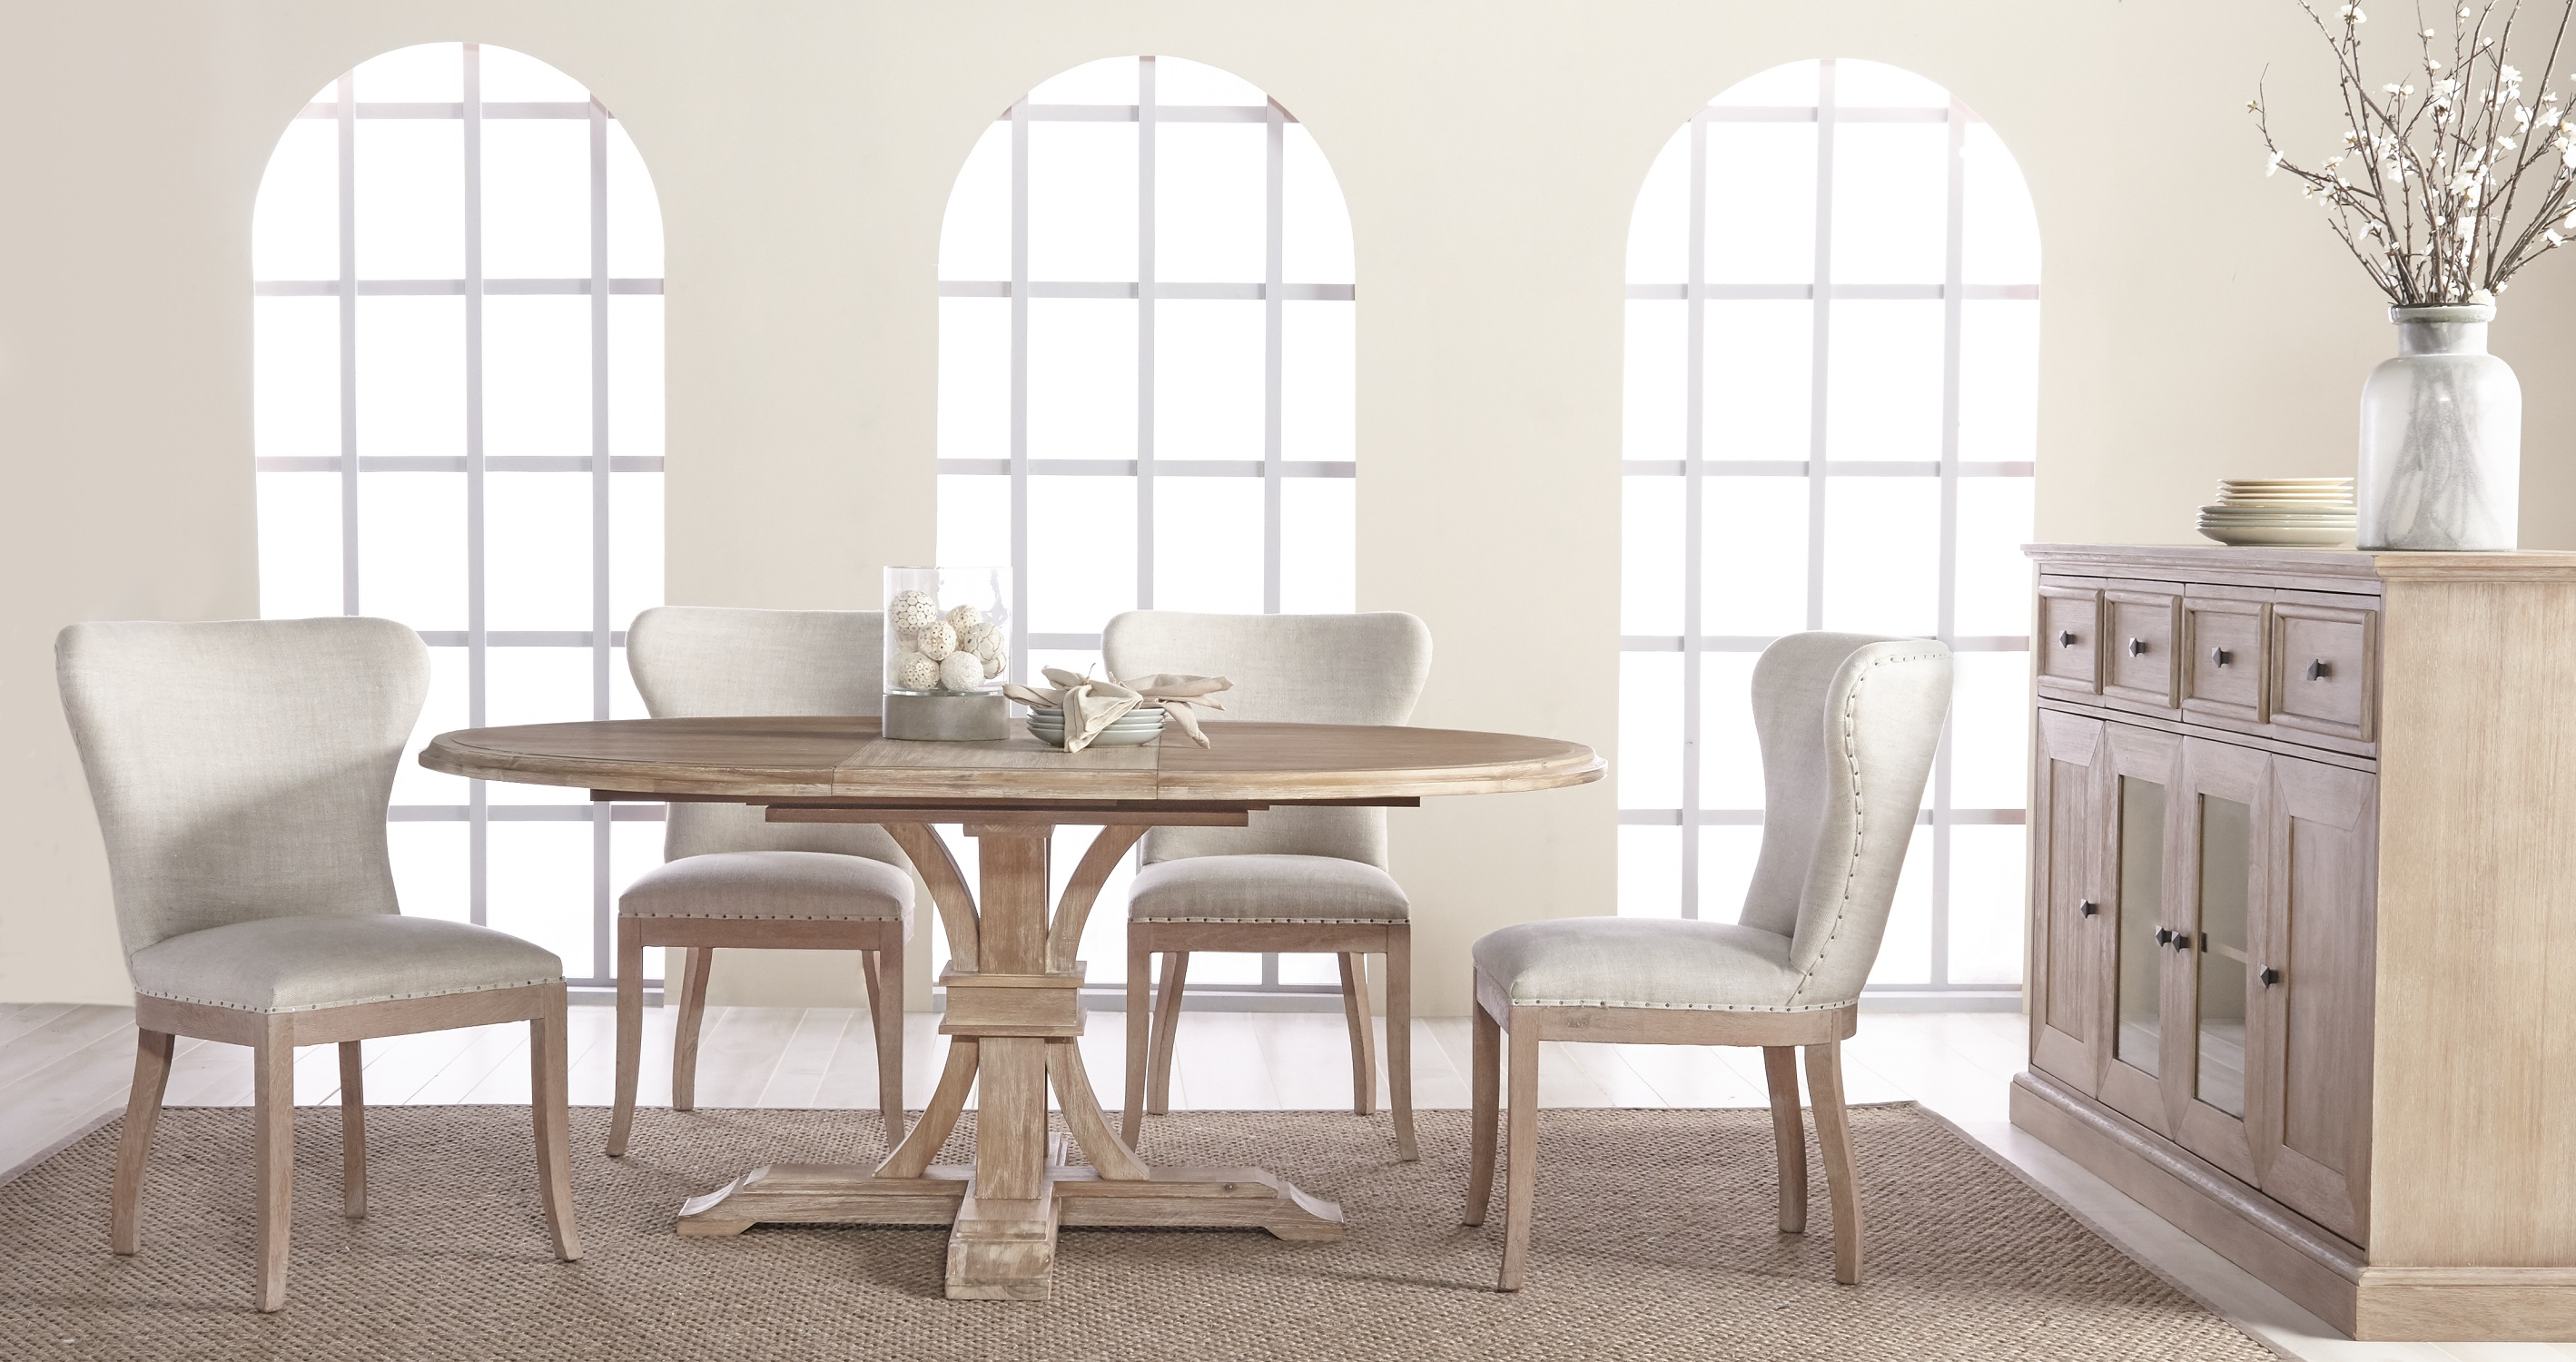 Devon Round Extension Dining Table - Stone Wash - Setting 3